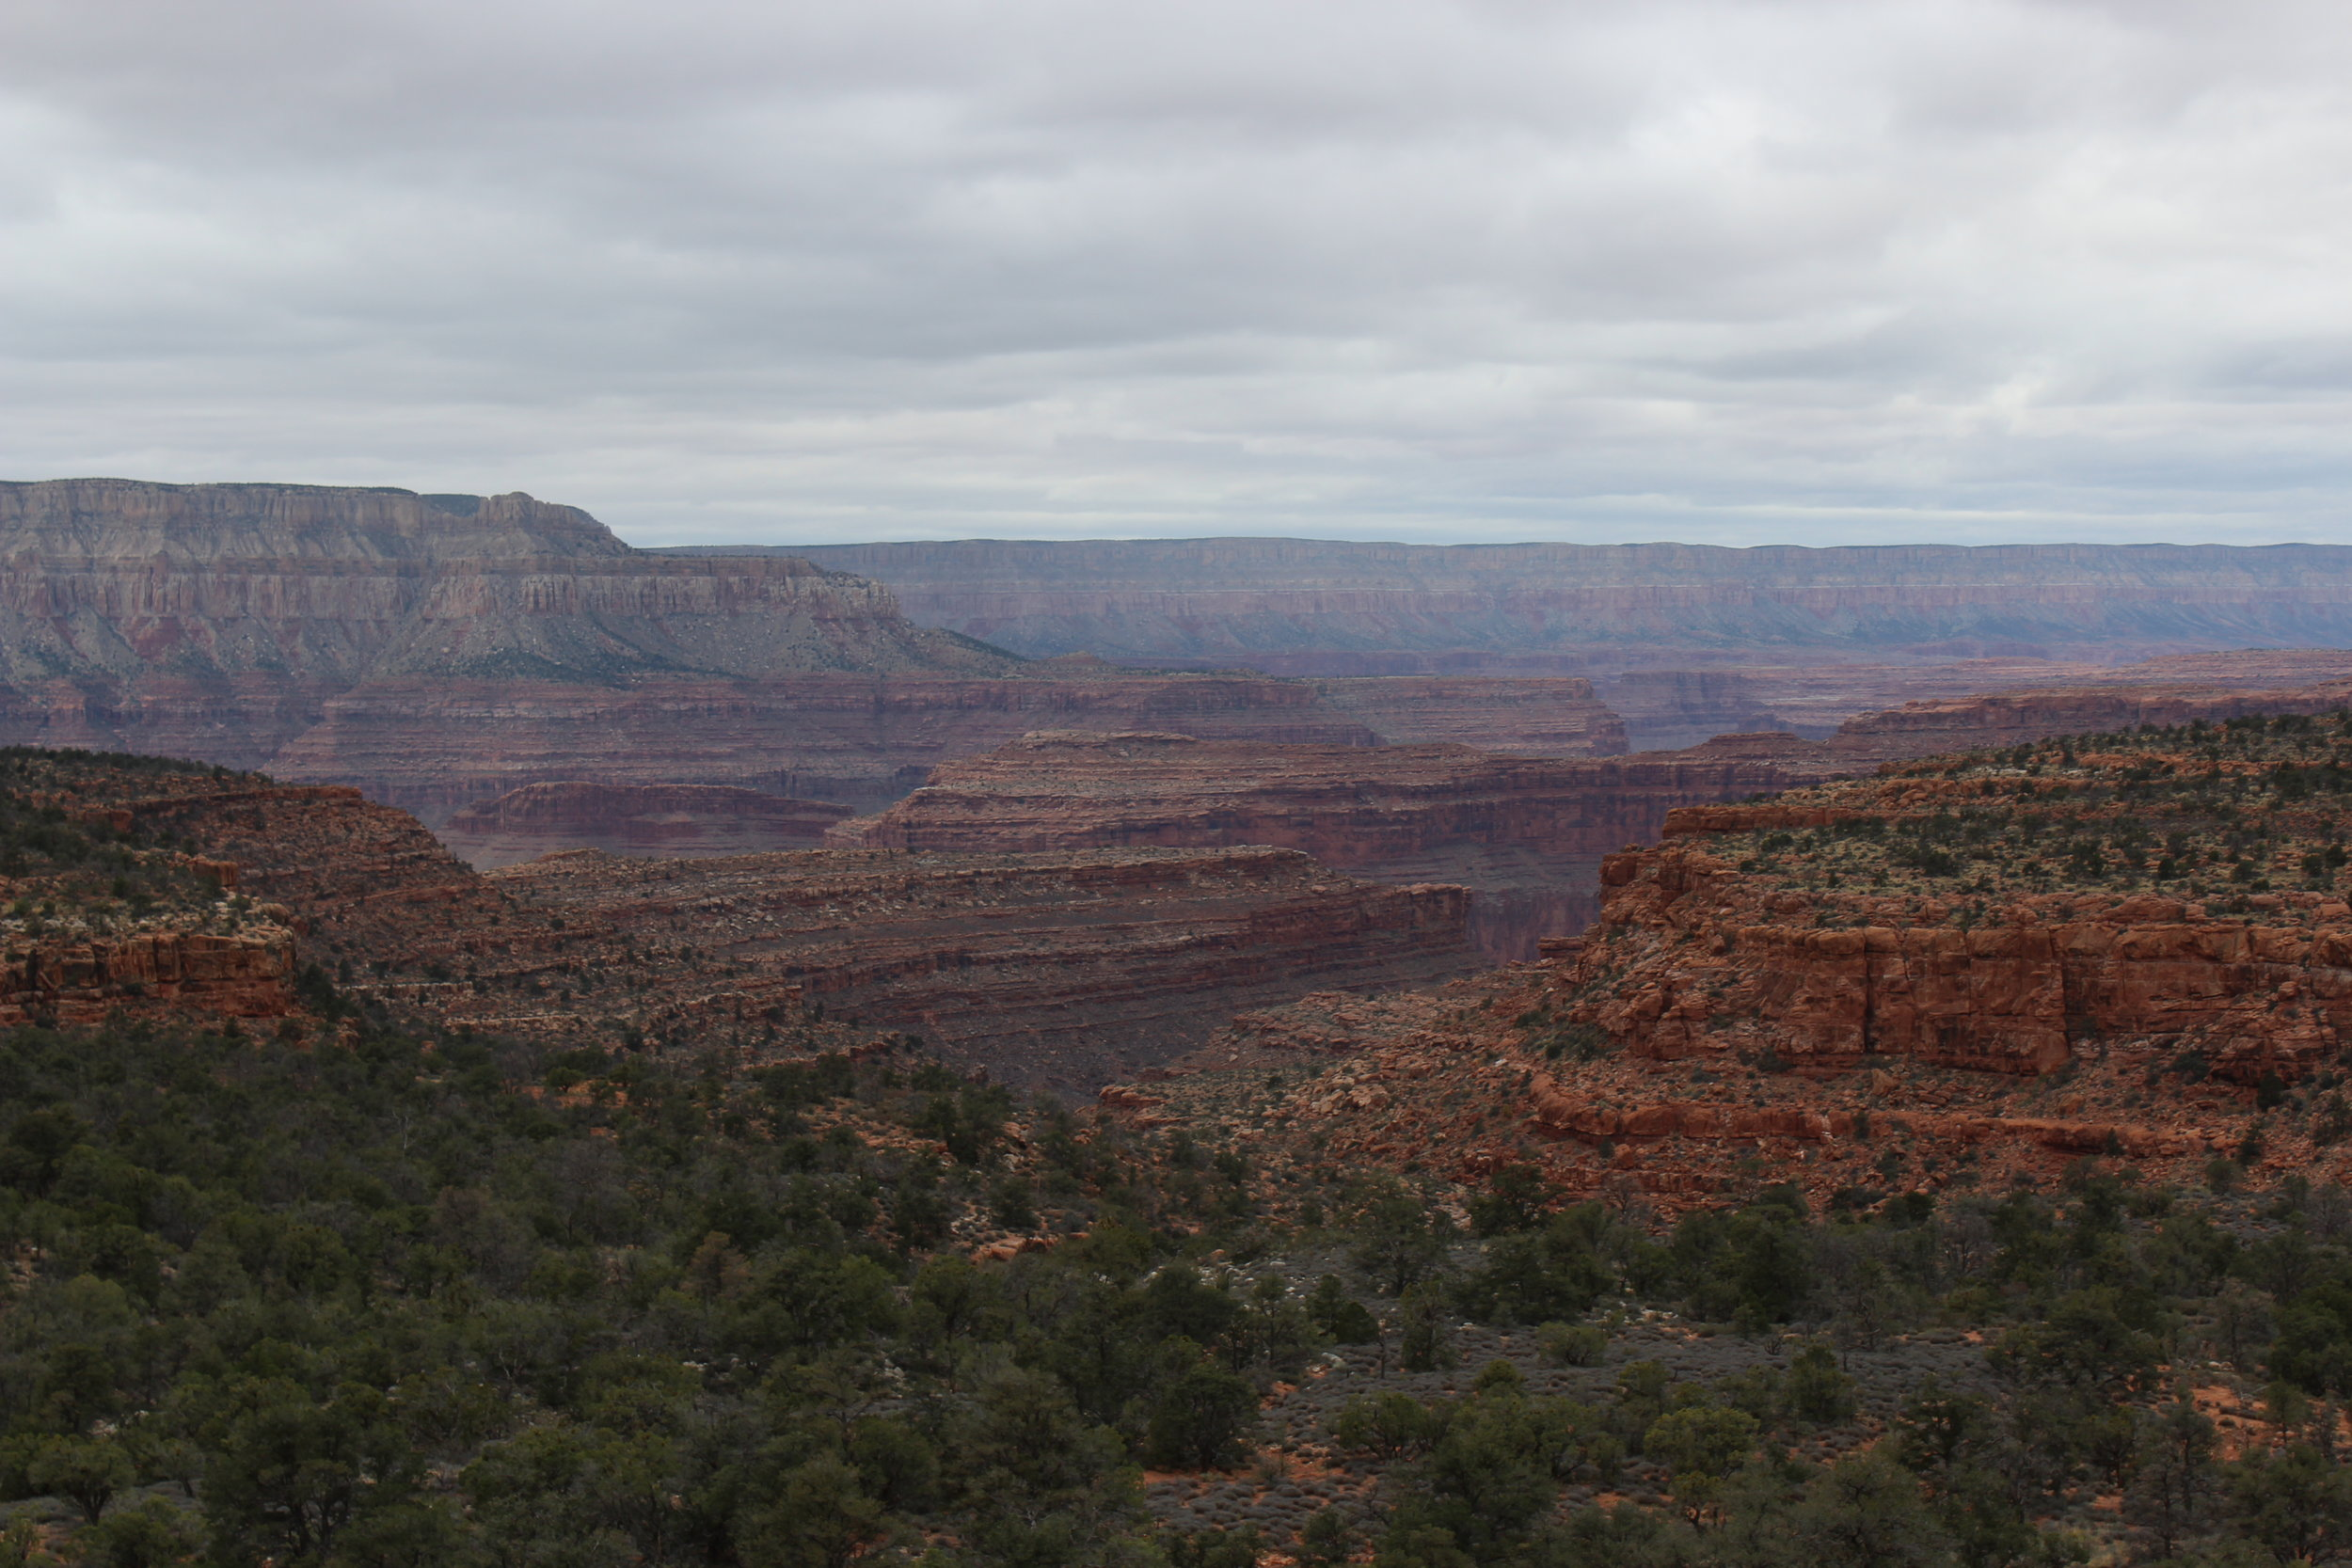 Looking back into the Canyon